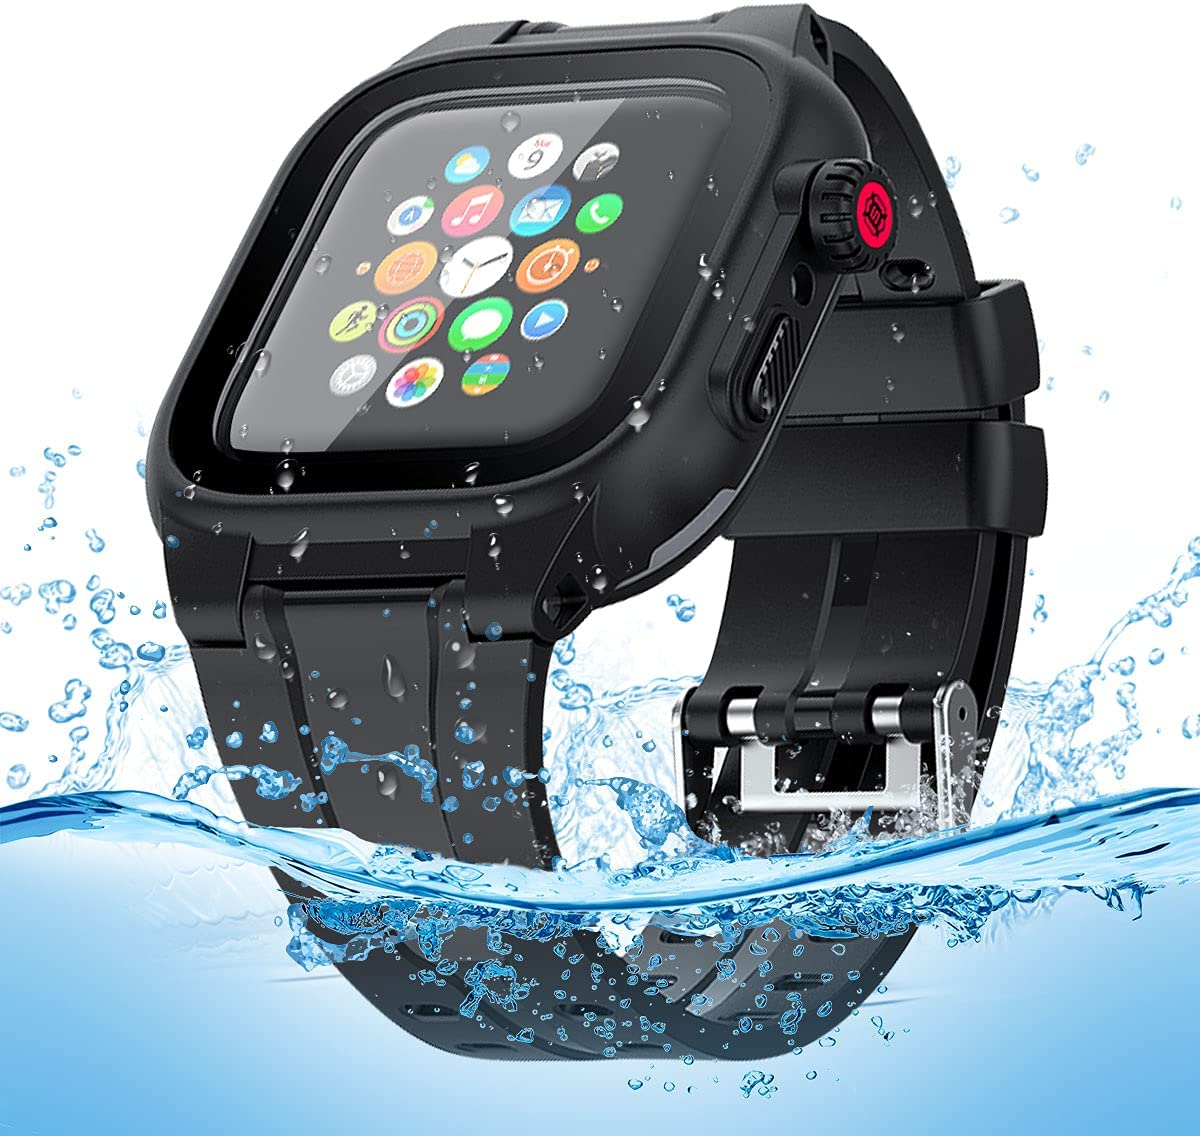 Apple Watch Waterproof Case for 44mm Apple Watch Series 6/5/4/SE, Waterproof Shockproof Impact Resistant Rugged Protective Case with Built-in Screen Protector Premium Soft Strap Bands Black